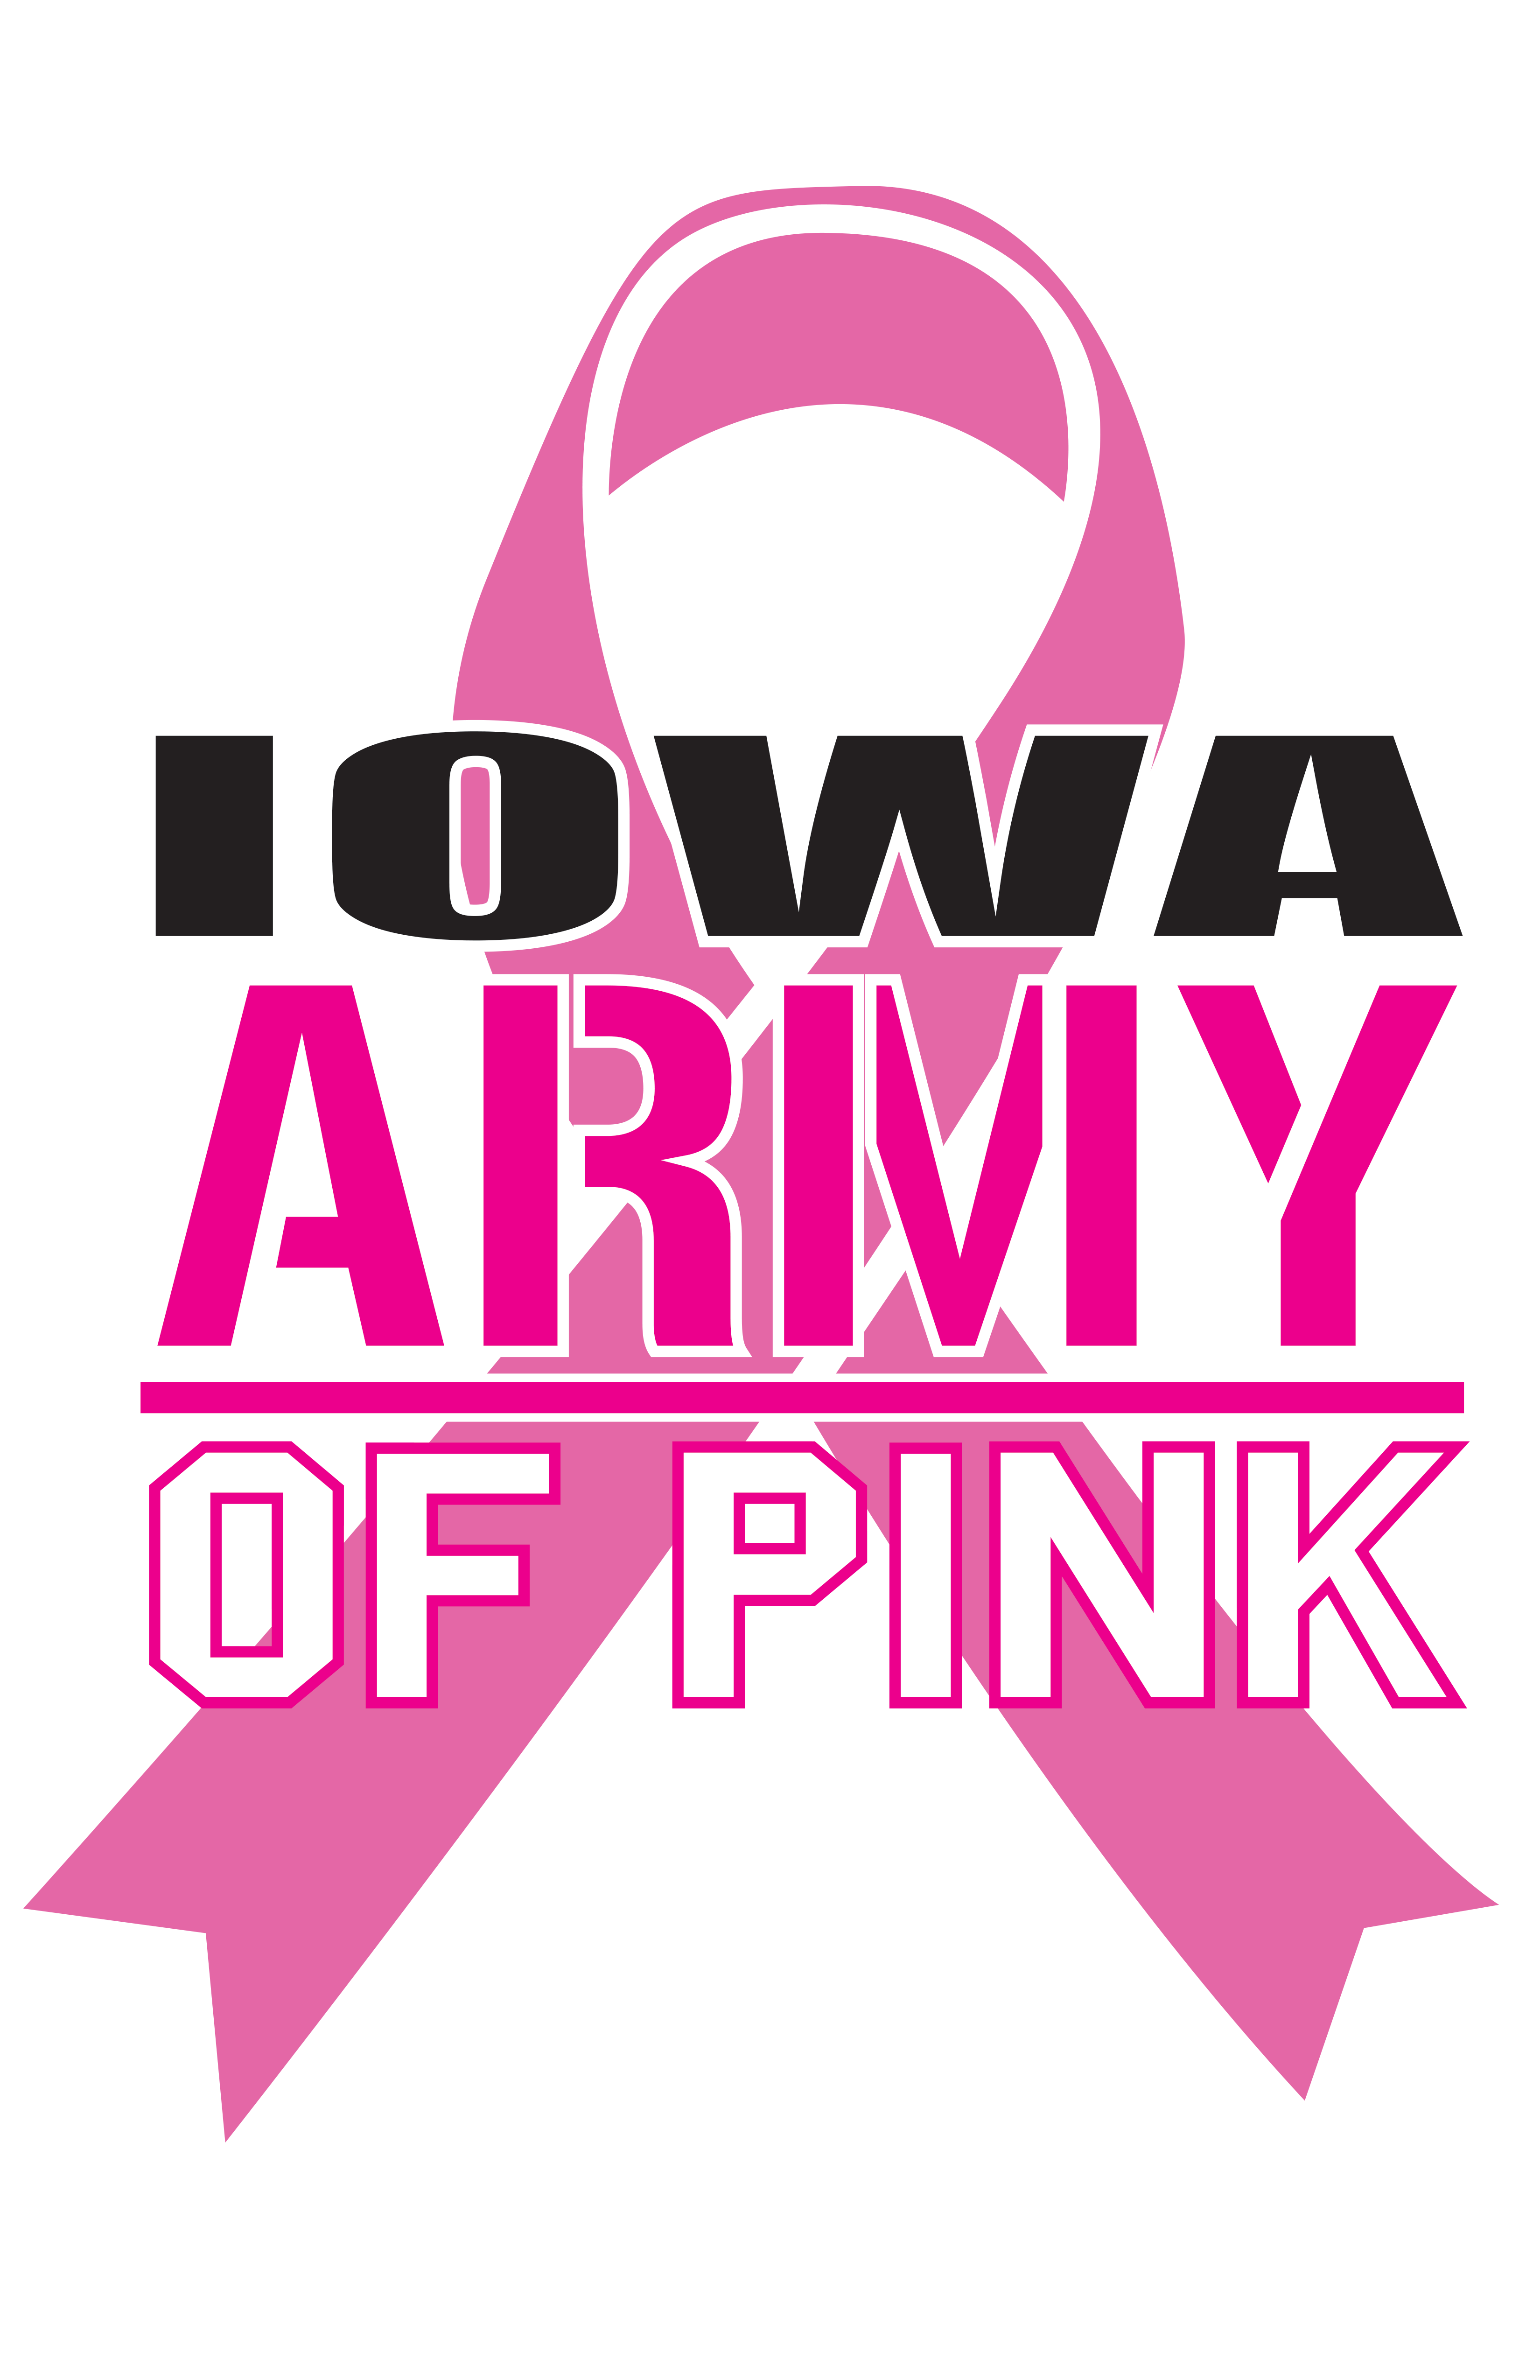 Iowa Army of Pink